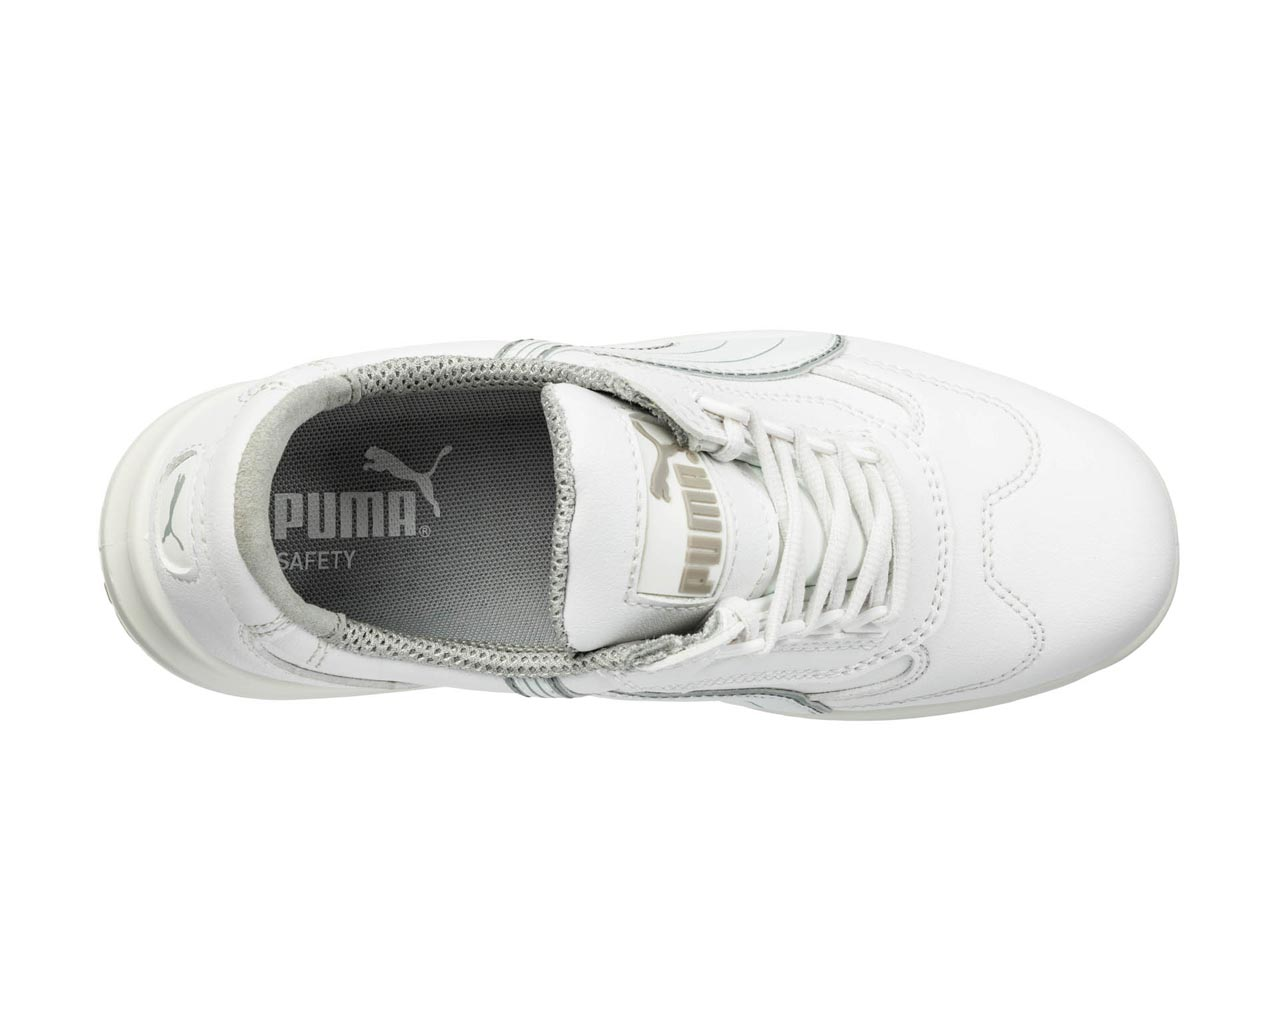 Puma S2 Arbeitsschuh Clarity Low, 640622